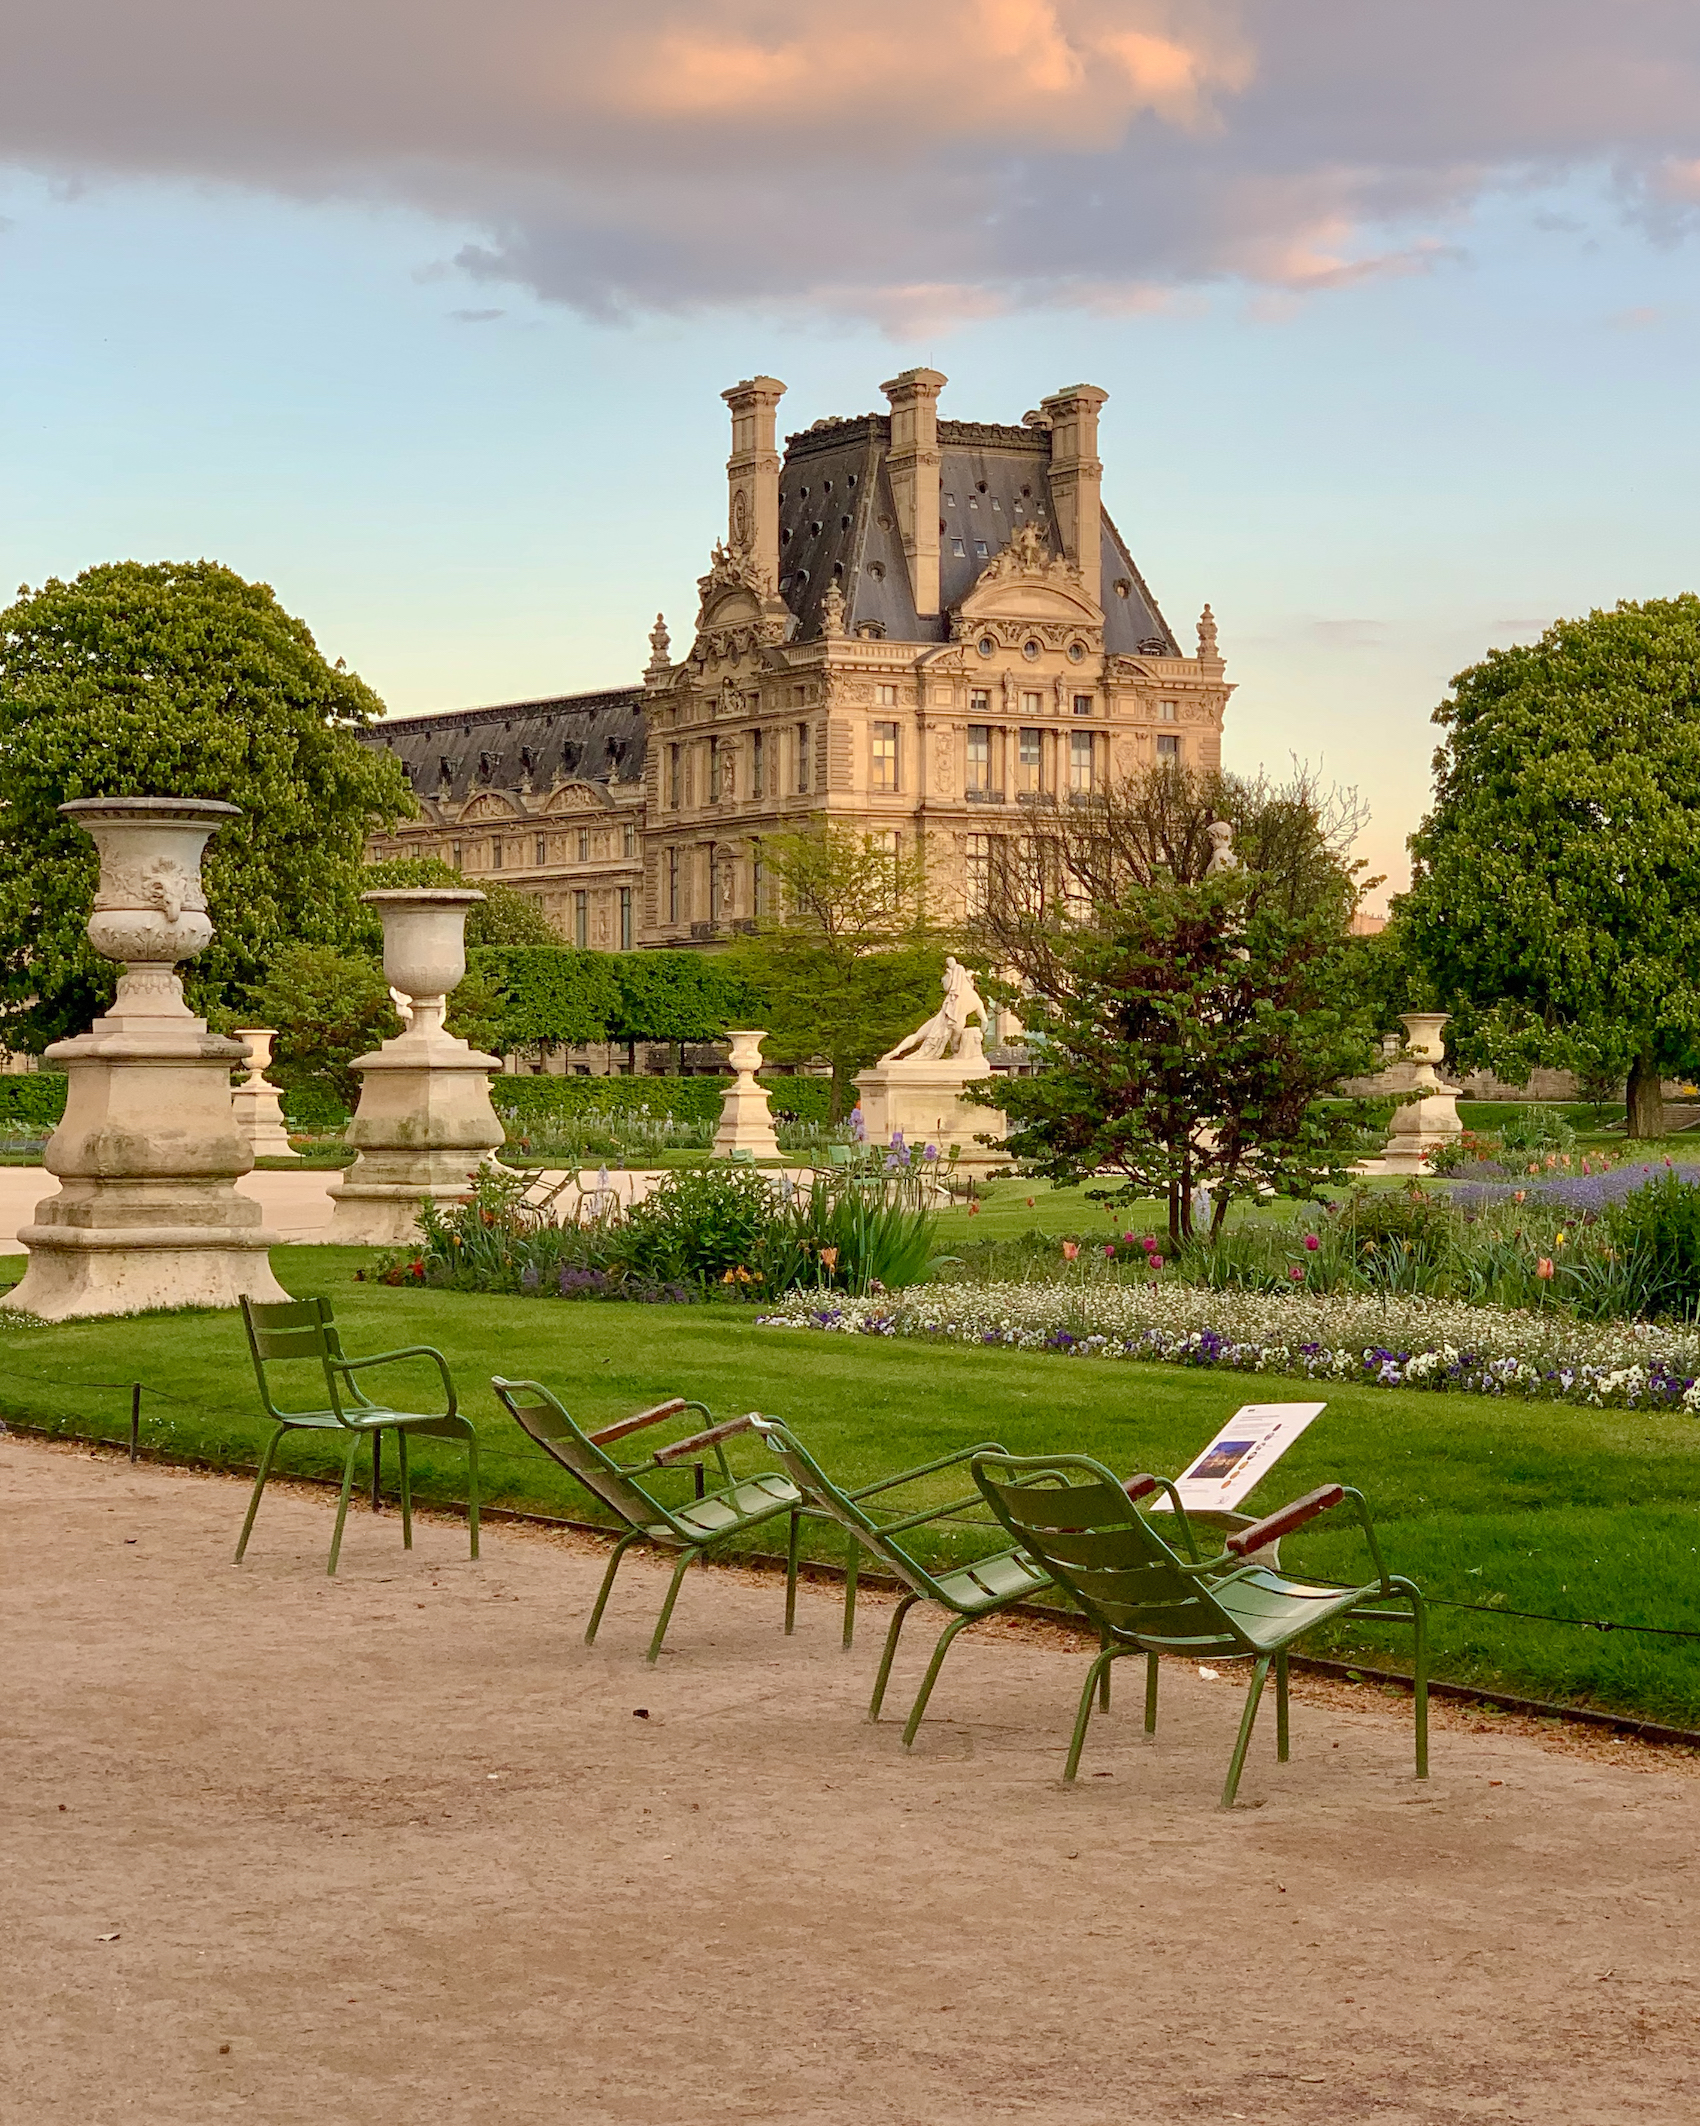 Moment of spring peace in the Tuileries Garden